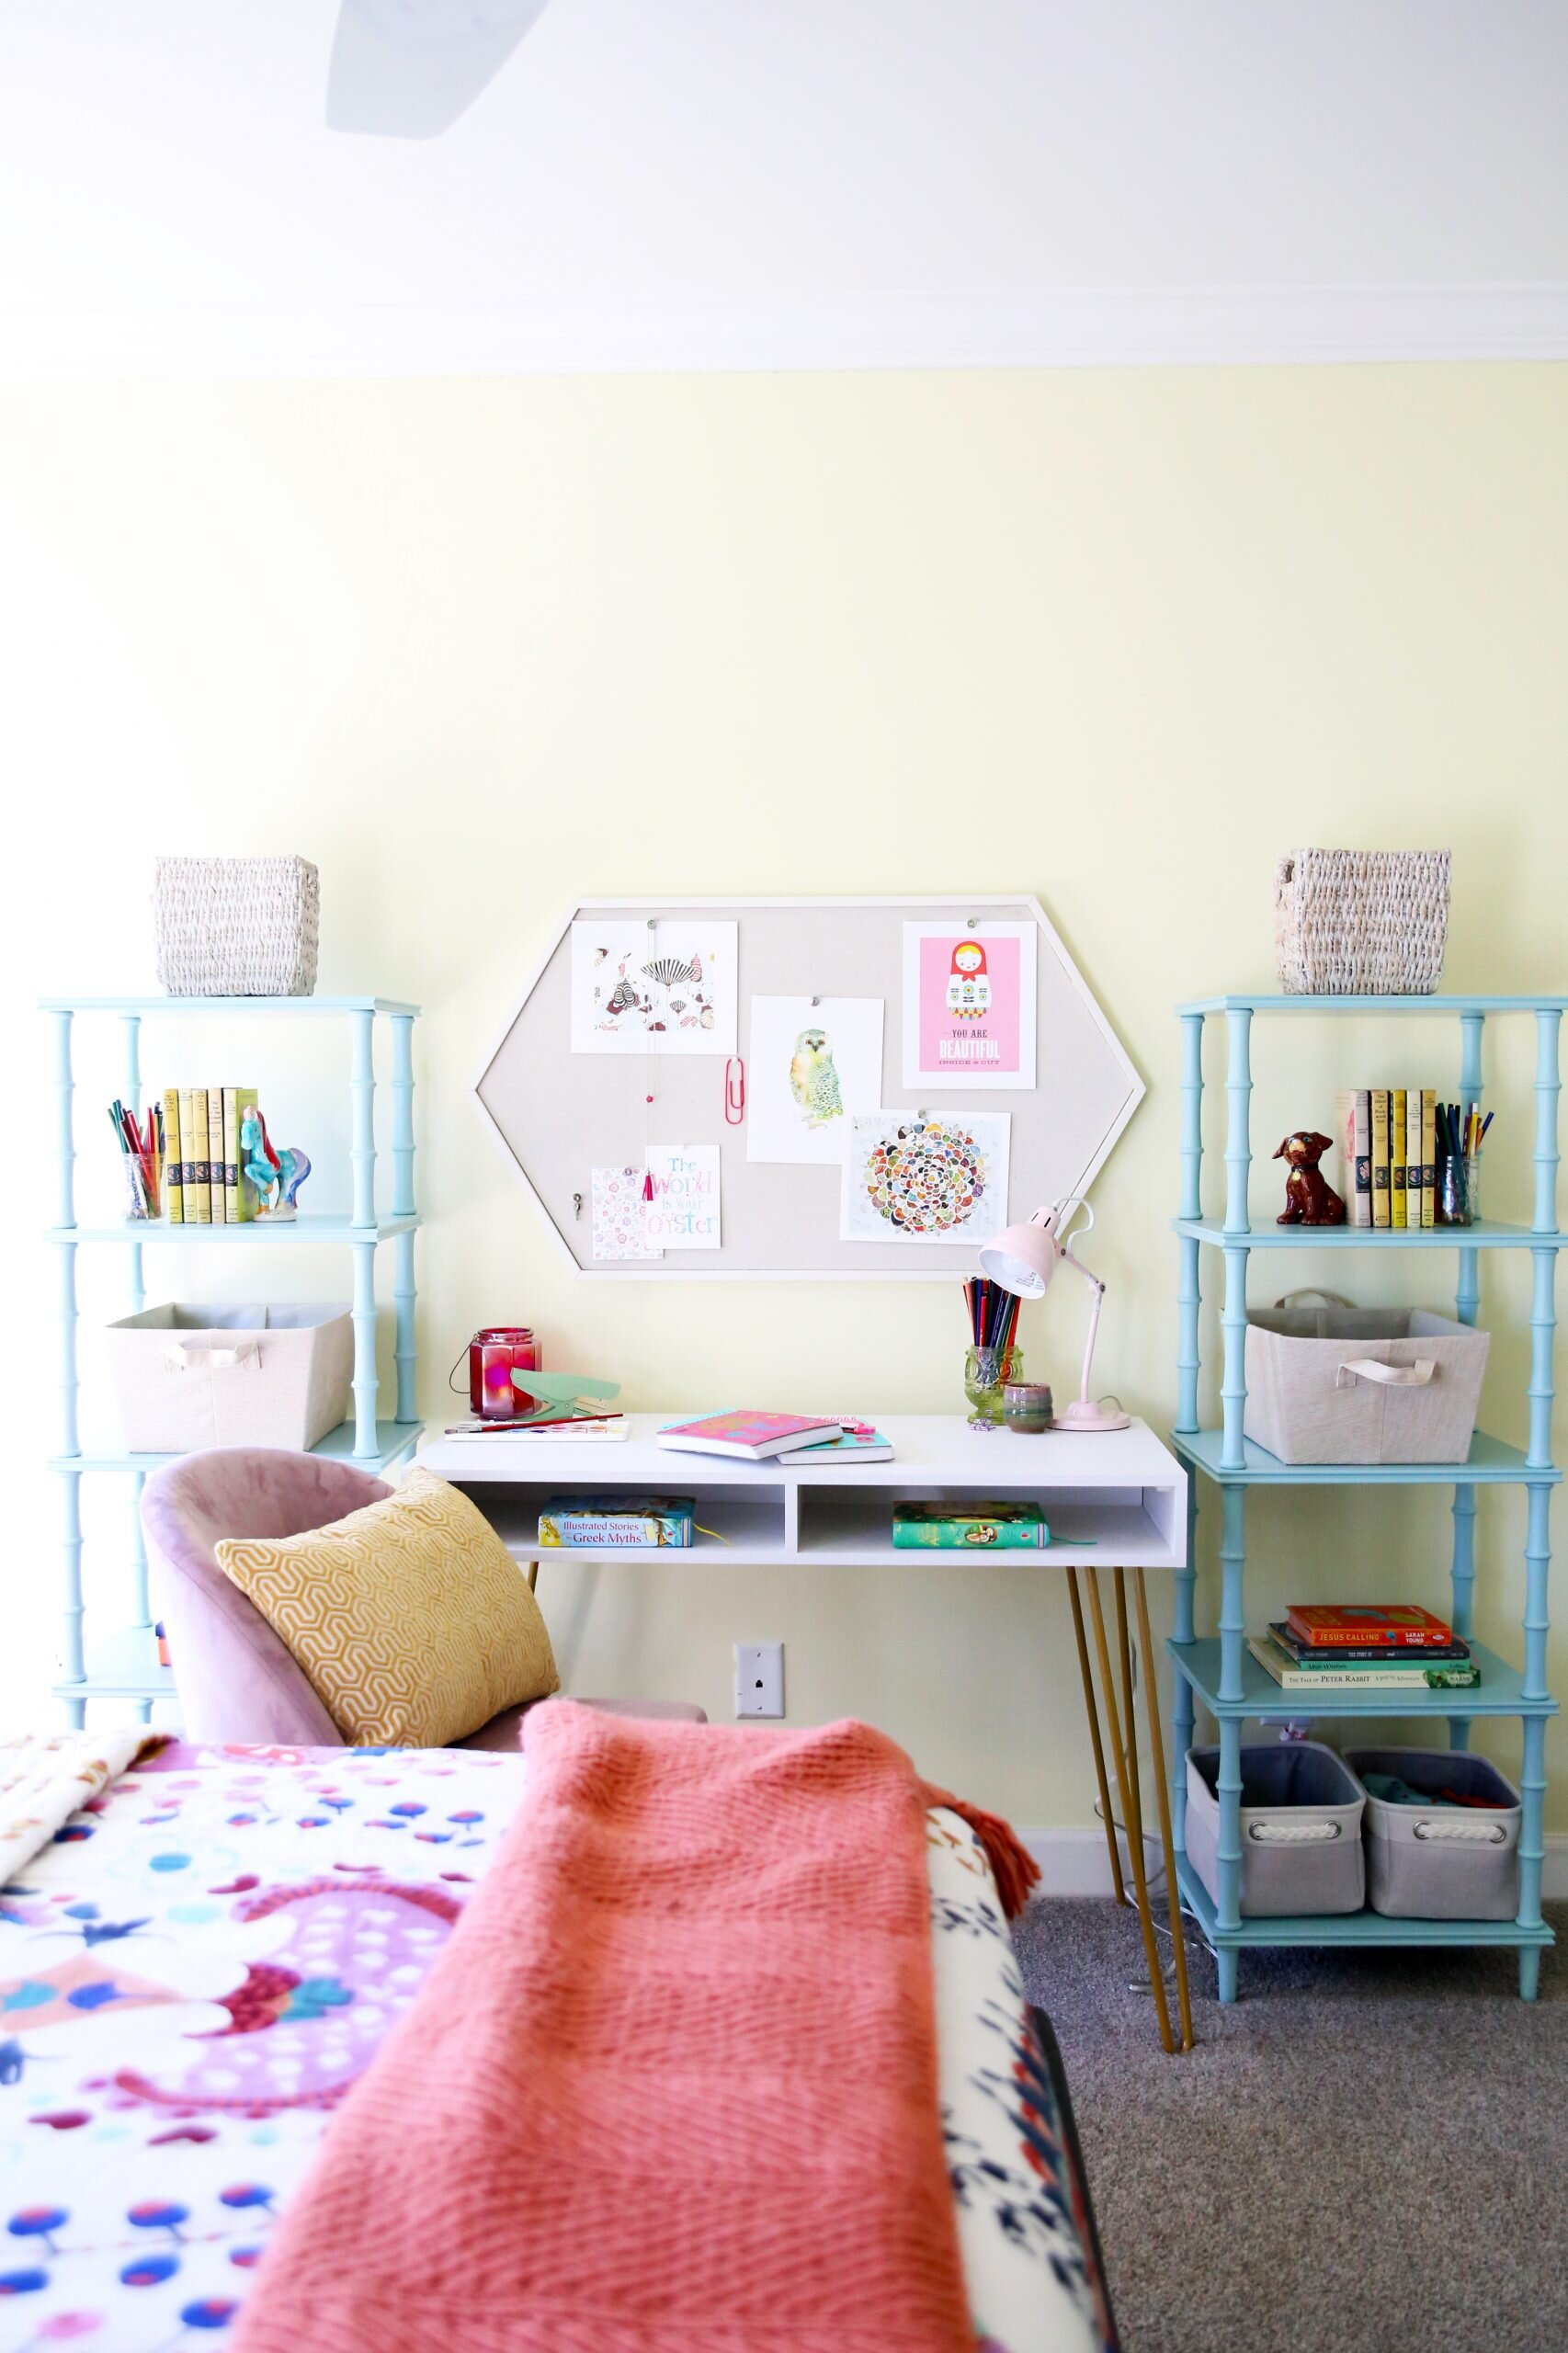 Creative Kids Spaces at Home